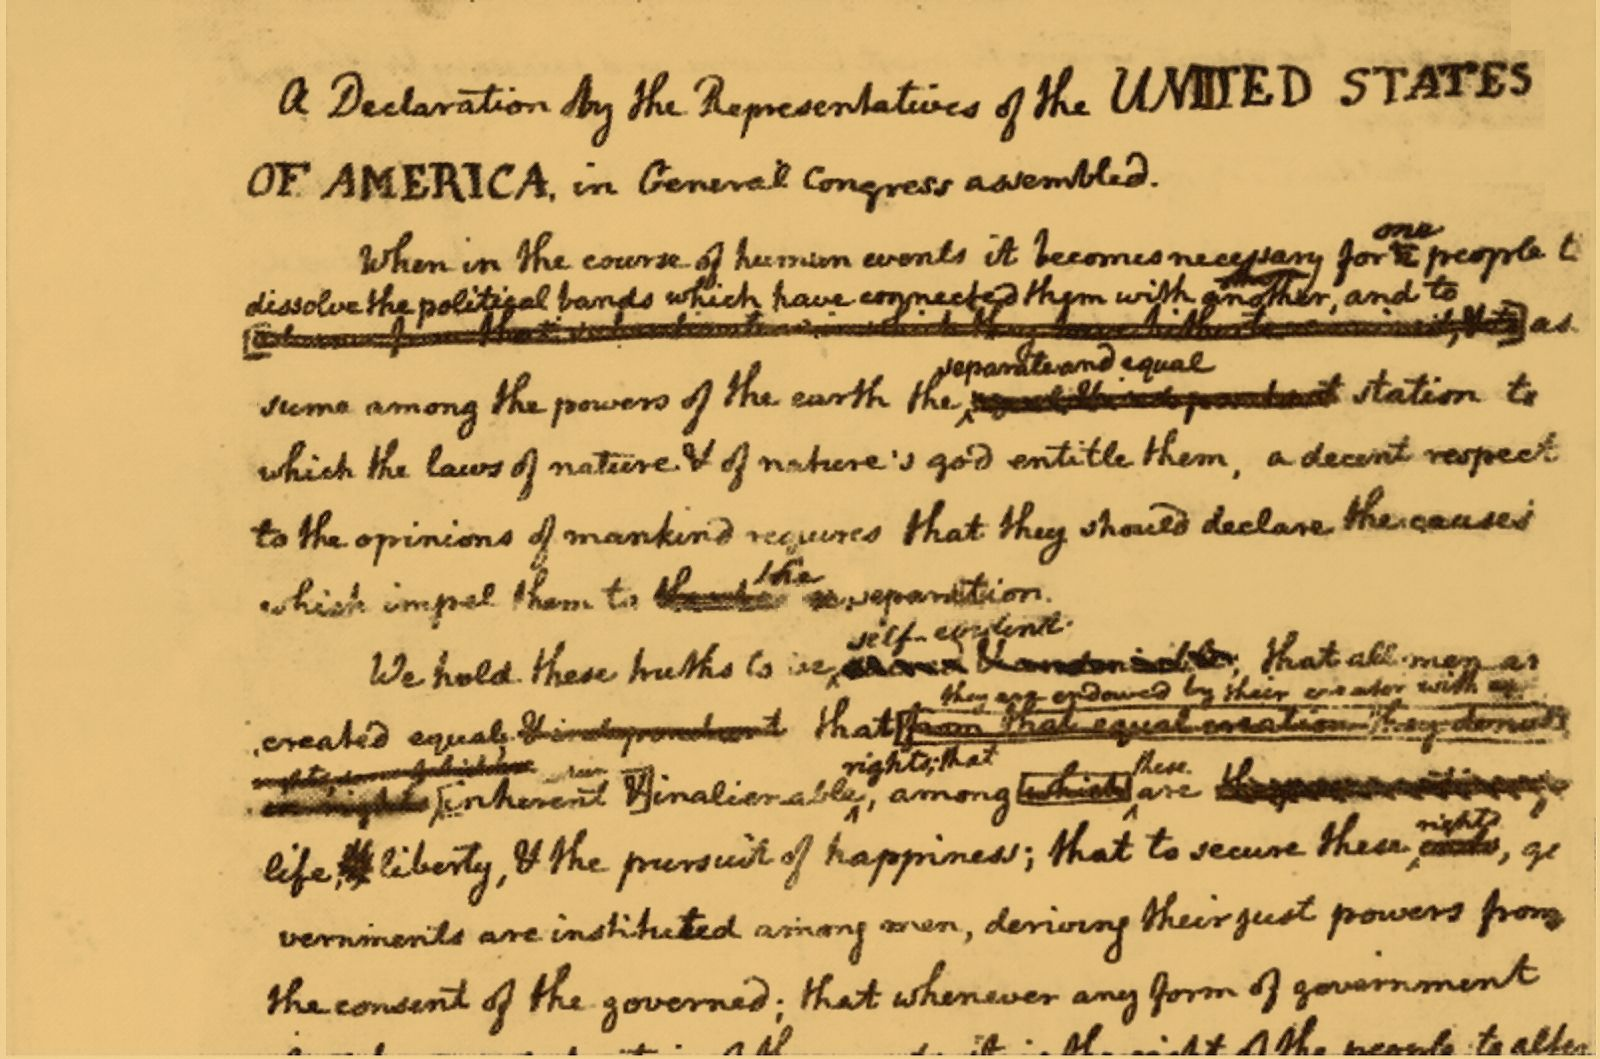 Thomas Jefferson's draft of the Declaration of Independence, with suggested changes by Ben Franklin. Does the decline of cursive threaten to sever our ties with the past?